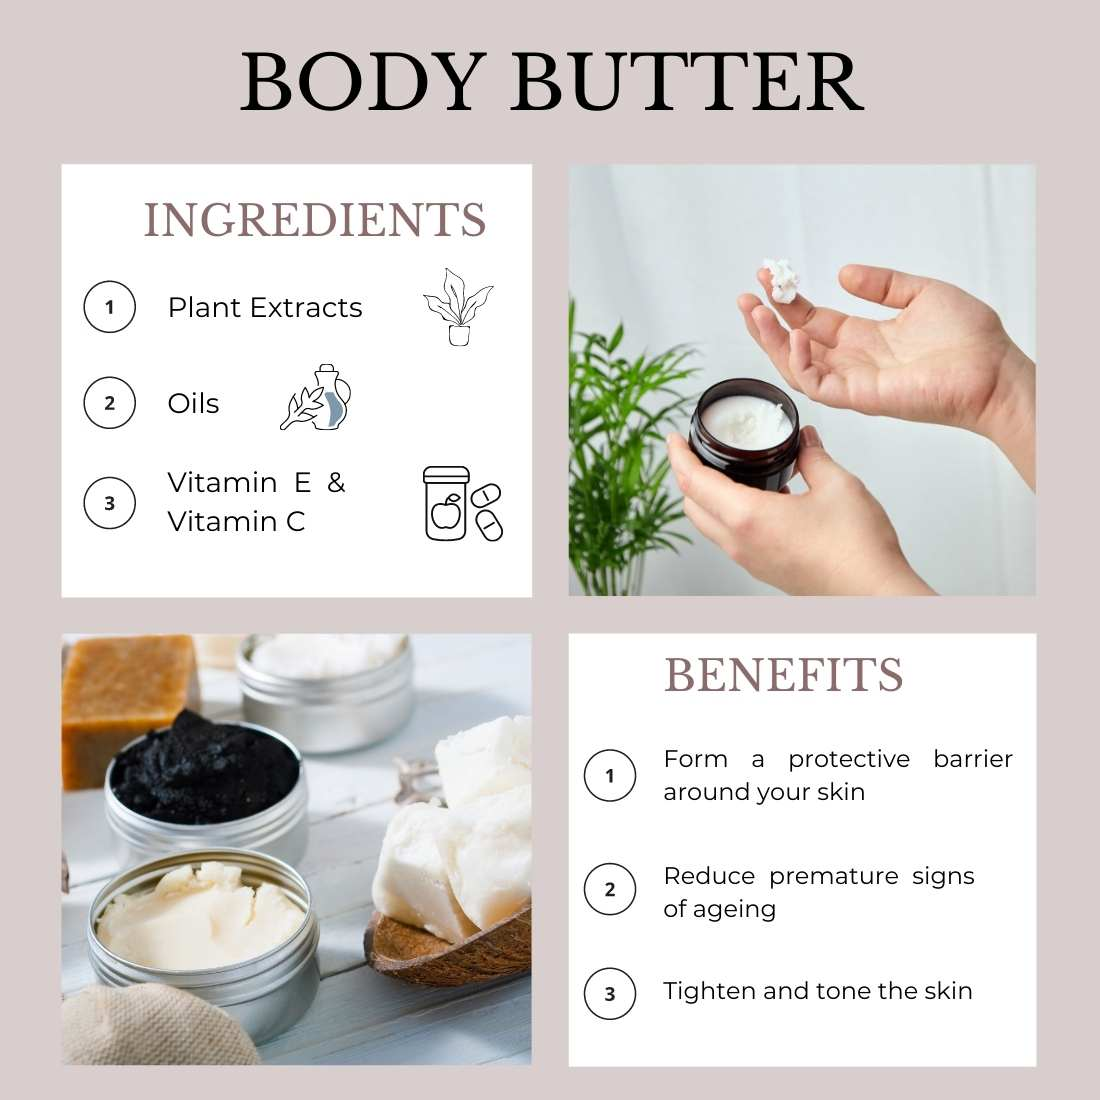 This image shows the ingredients and benefits of Body Butter.